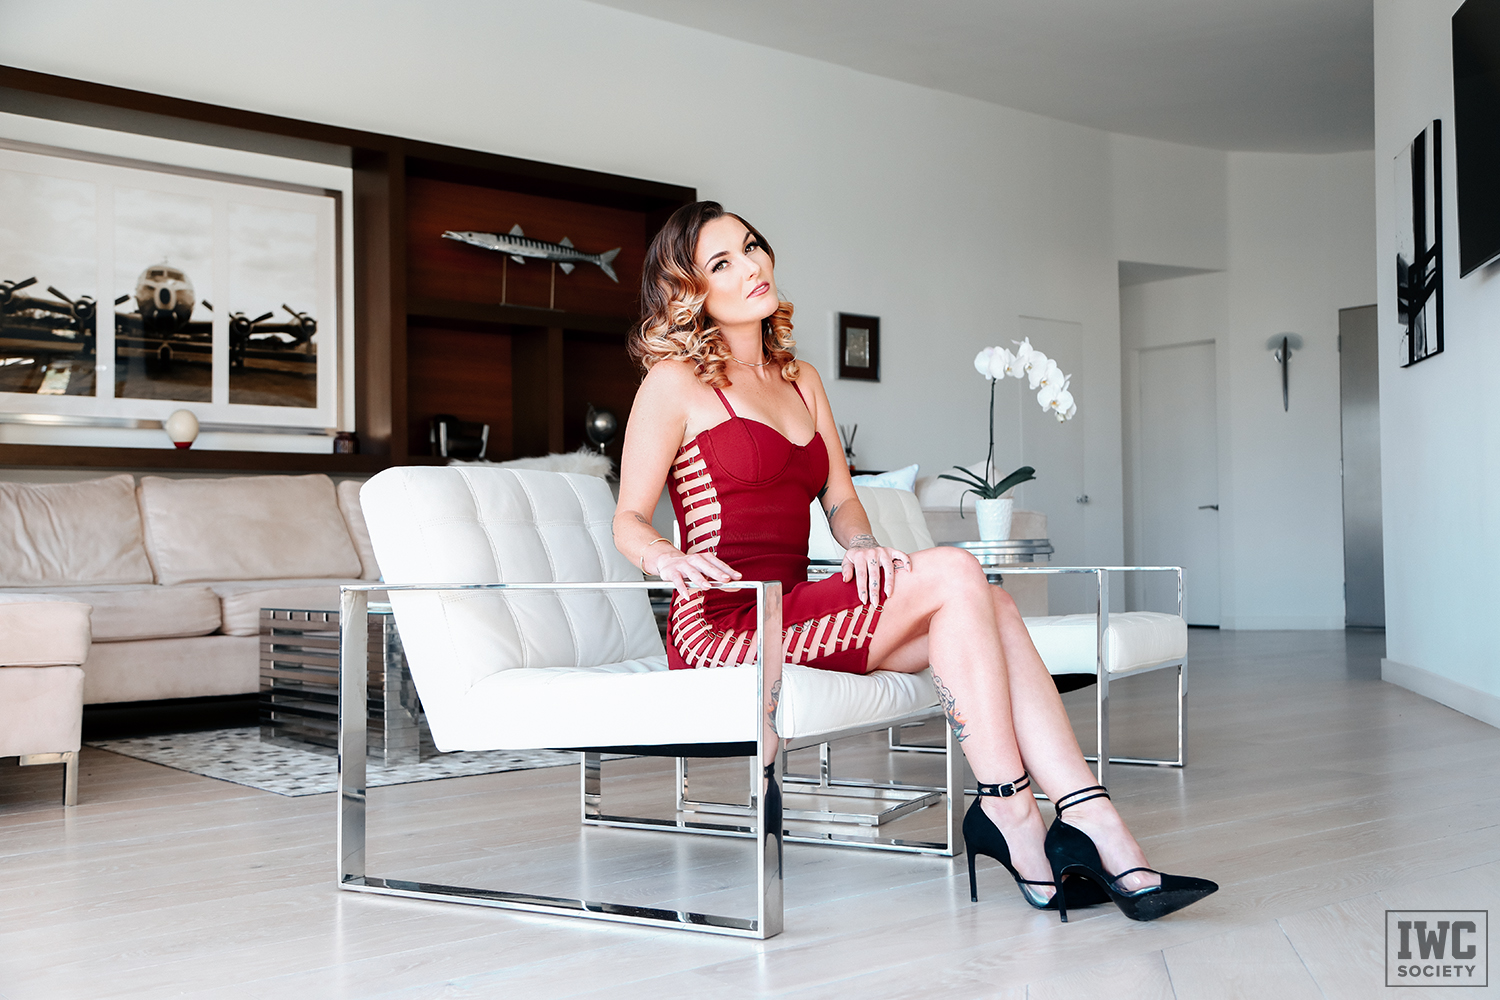 Goddess Emerald sexy findomme sitting on a modern white chair wearing a glamorous red dress